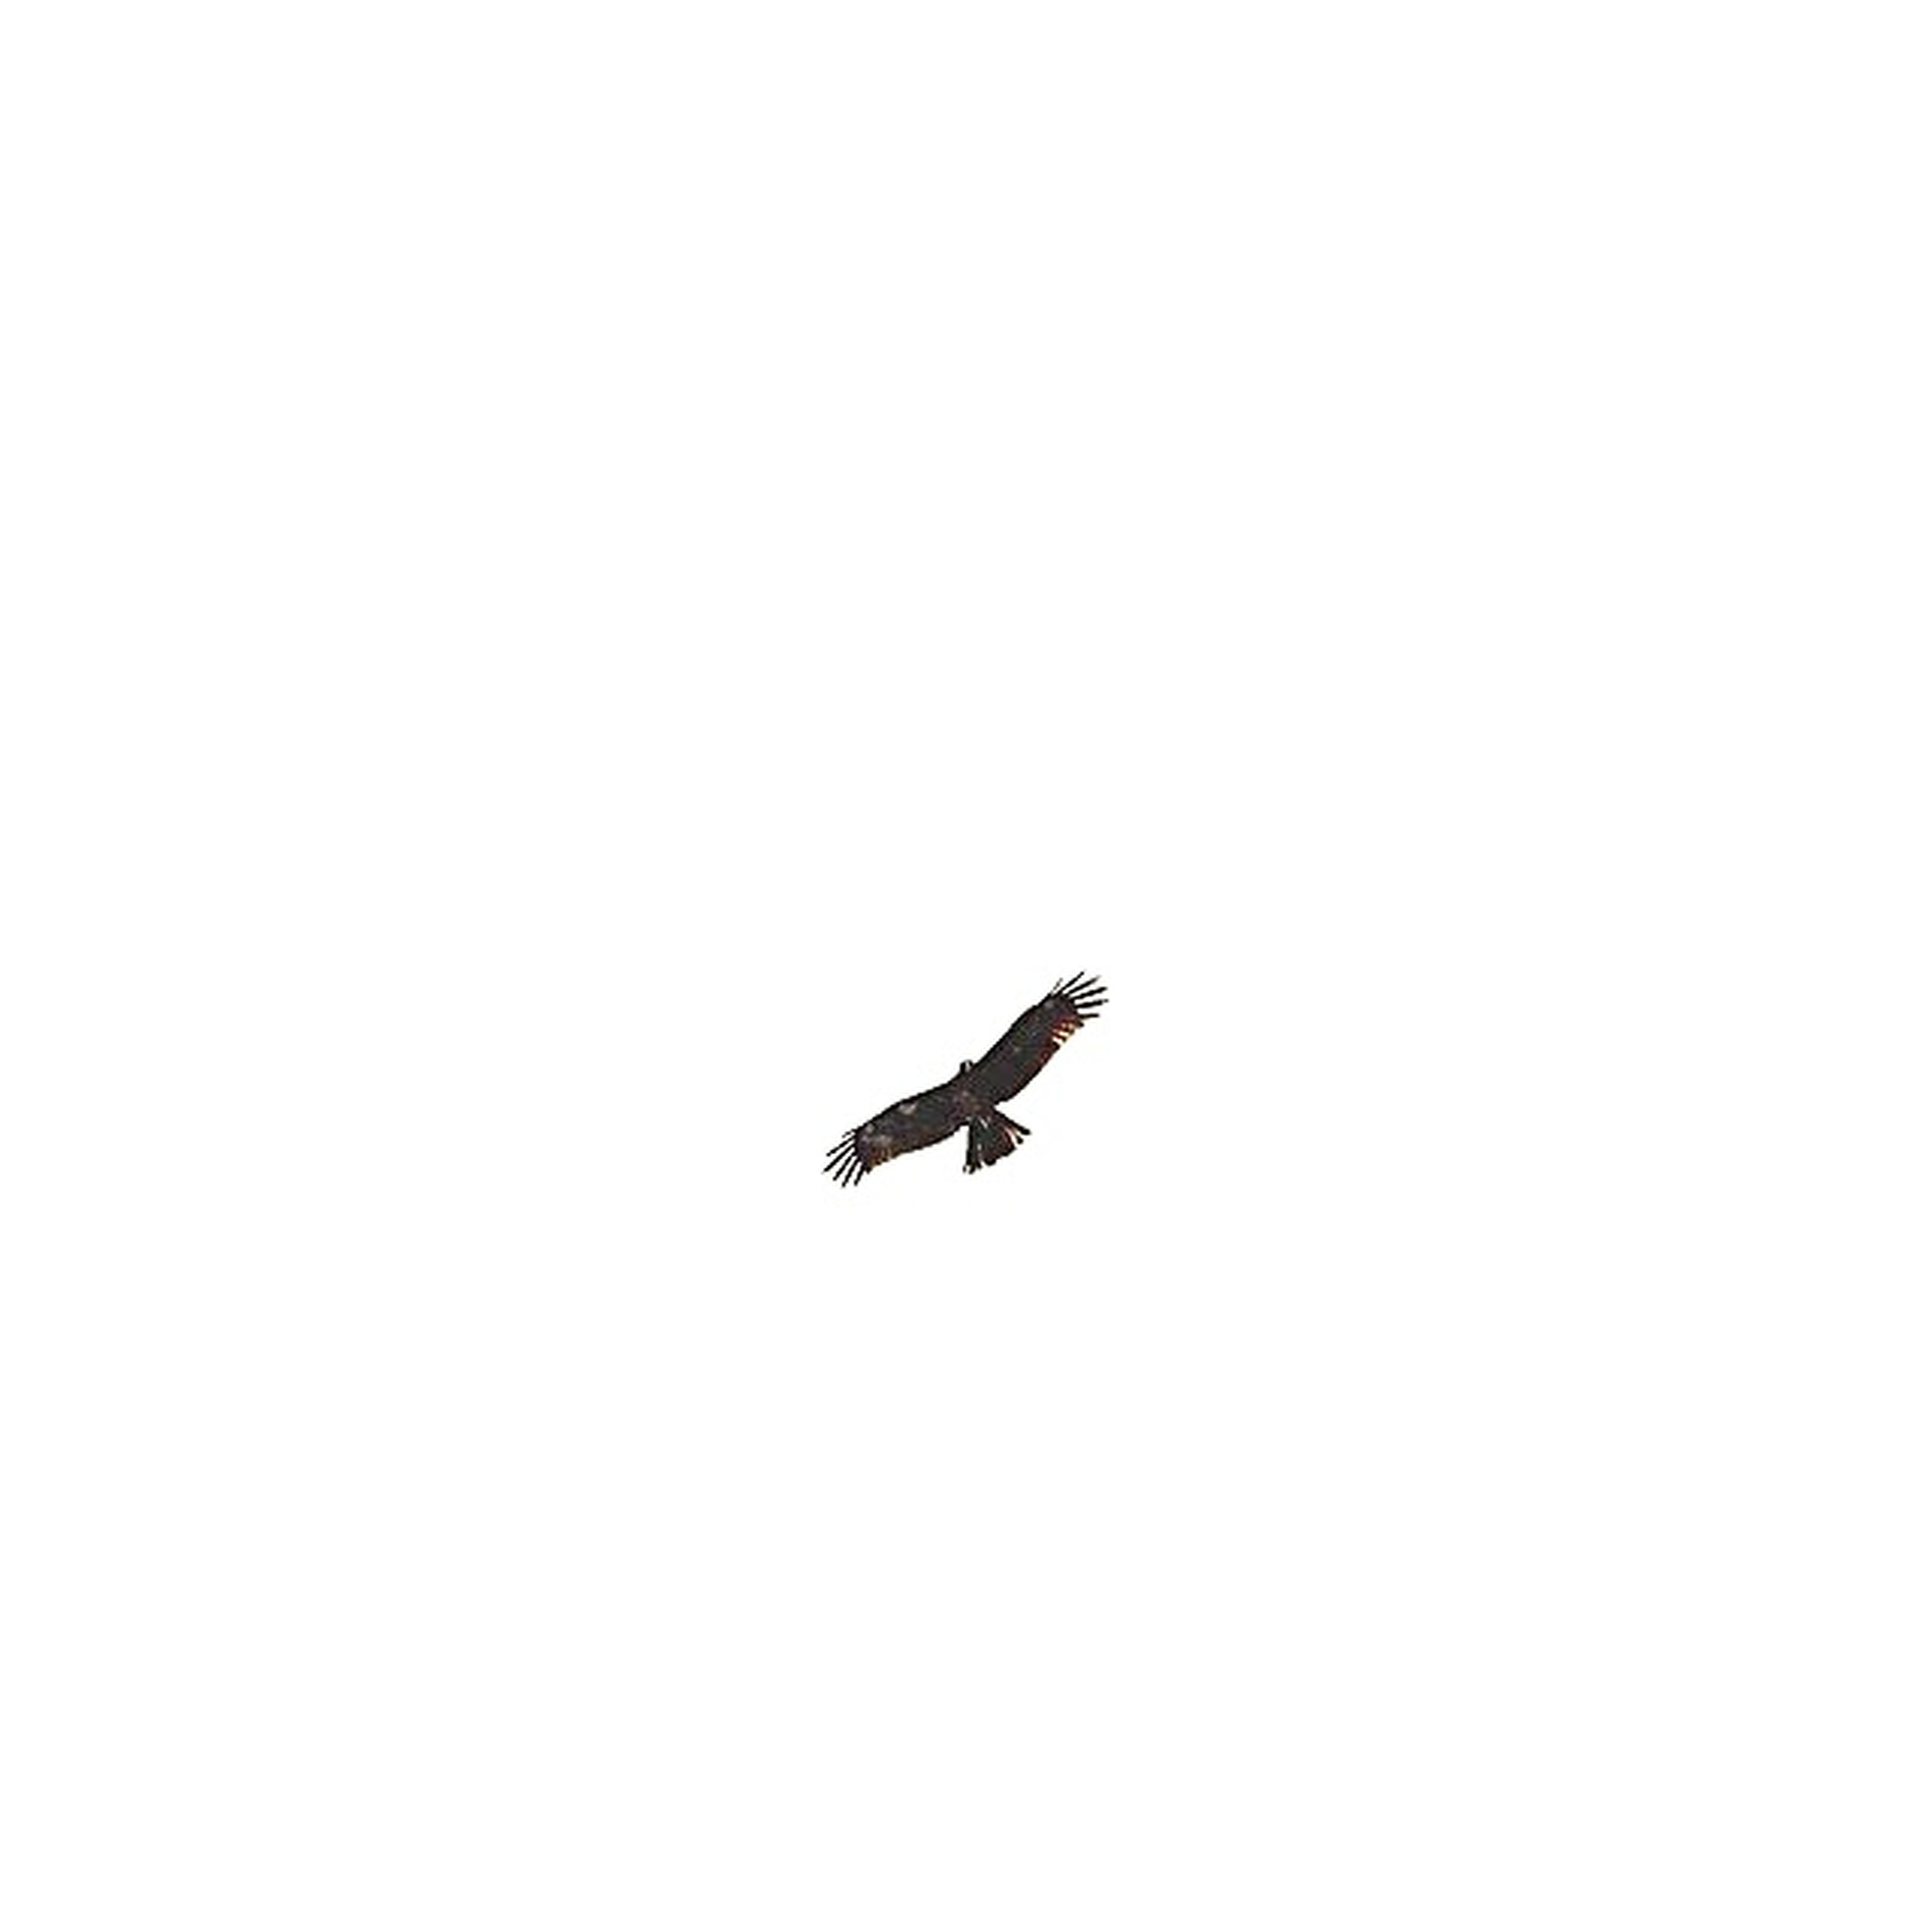 flying, mid-air, copy space, clear sky, low angle view, animal themes, bird, animals in the wild, one animal, wildlife, spread wings, transportation, silhouette, on the move, airplane, nature, sky, air vehicle, outdoors, no people